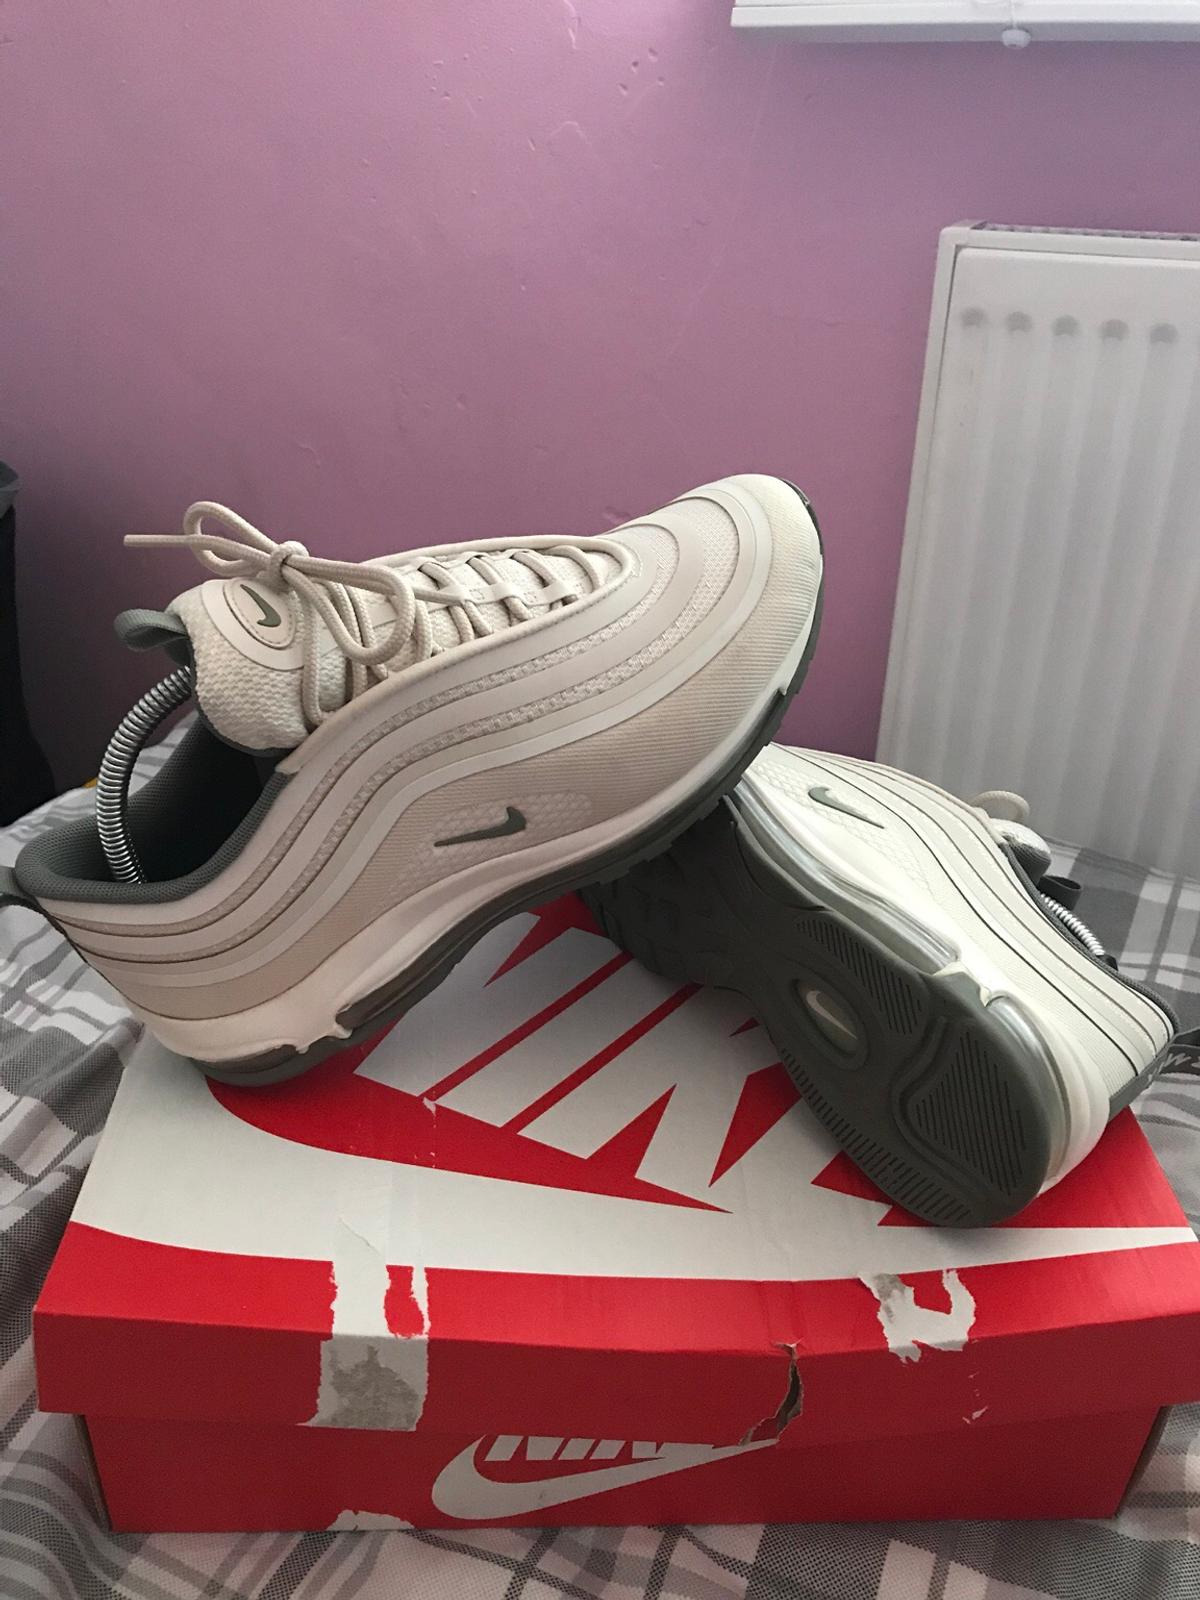 Wms Nike Air Max 97's in CM2 Chelmsford for £80.00 for sale